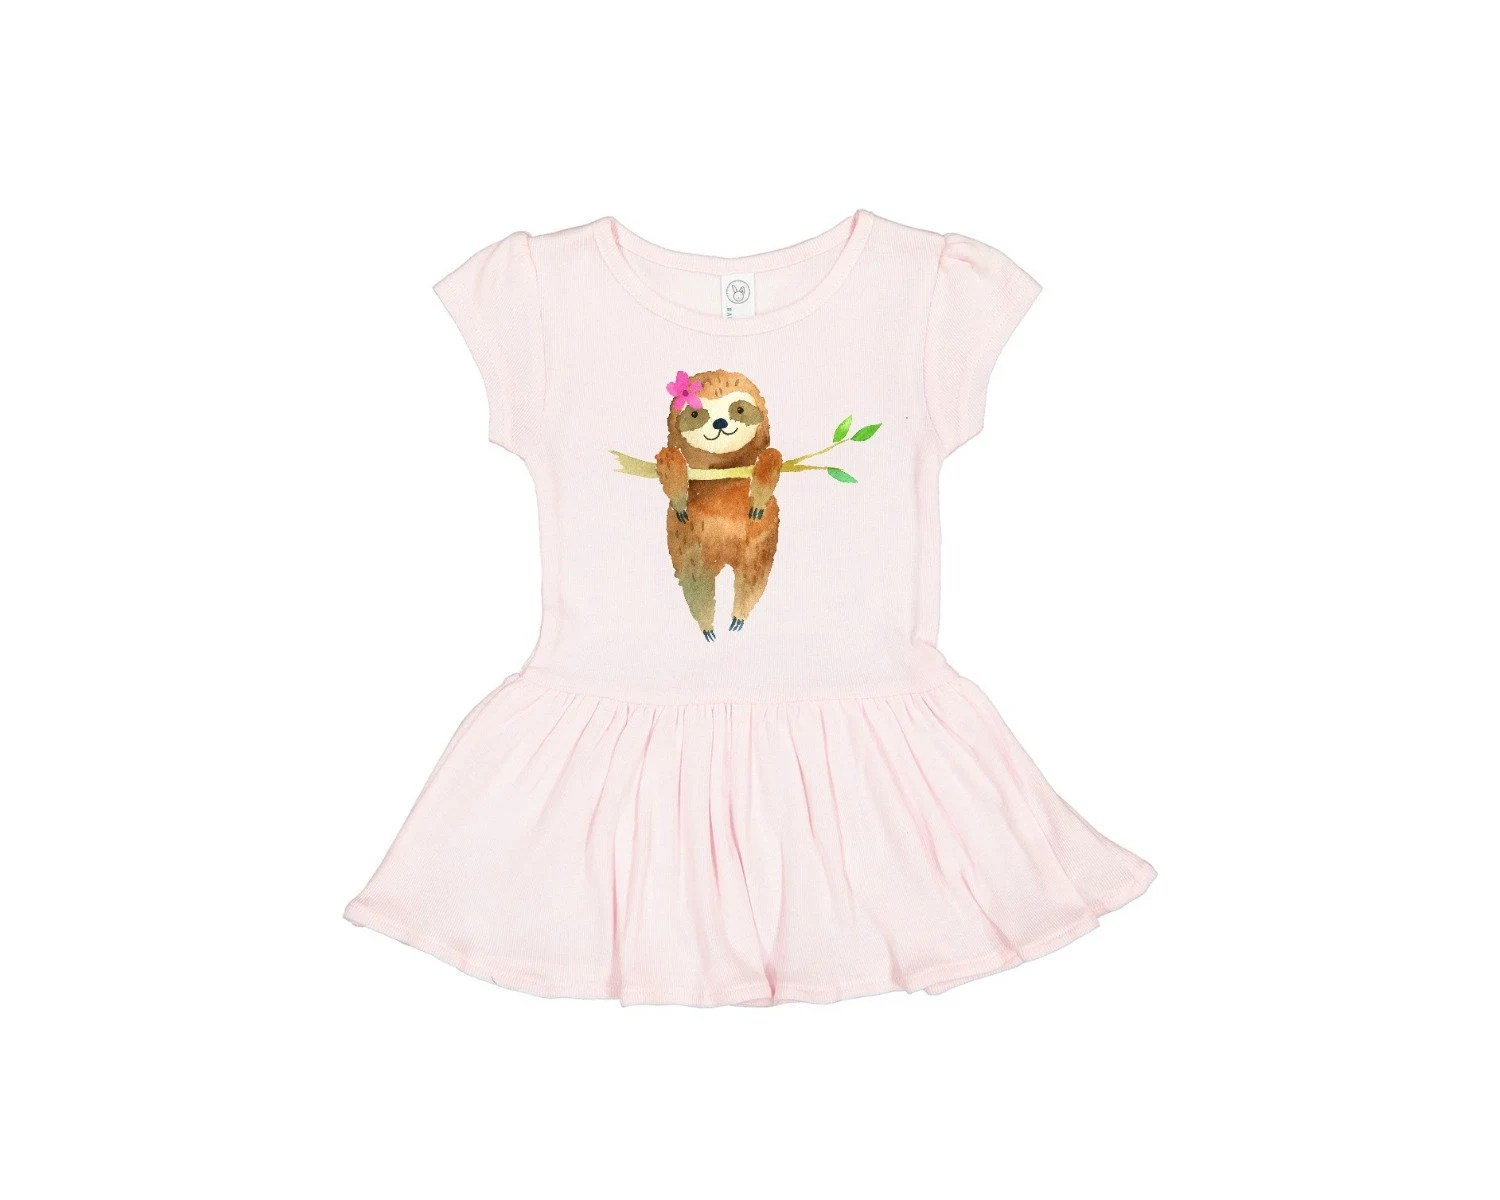 sloth outfit etsy